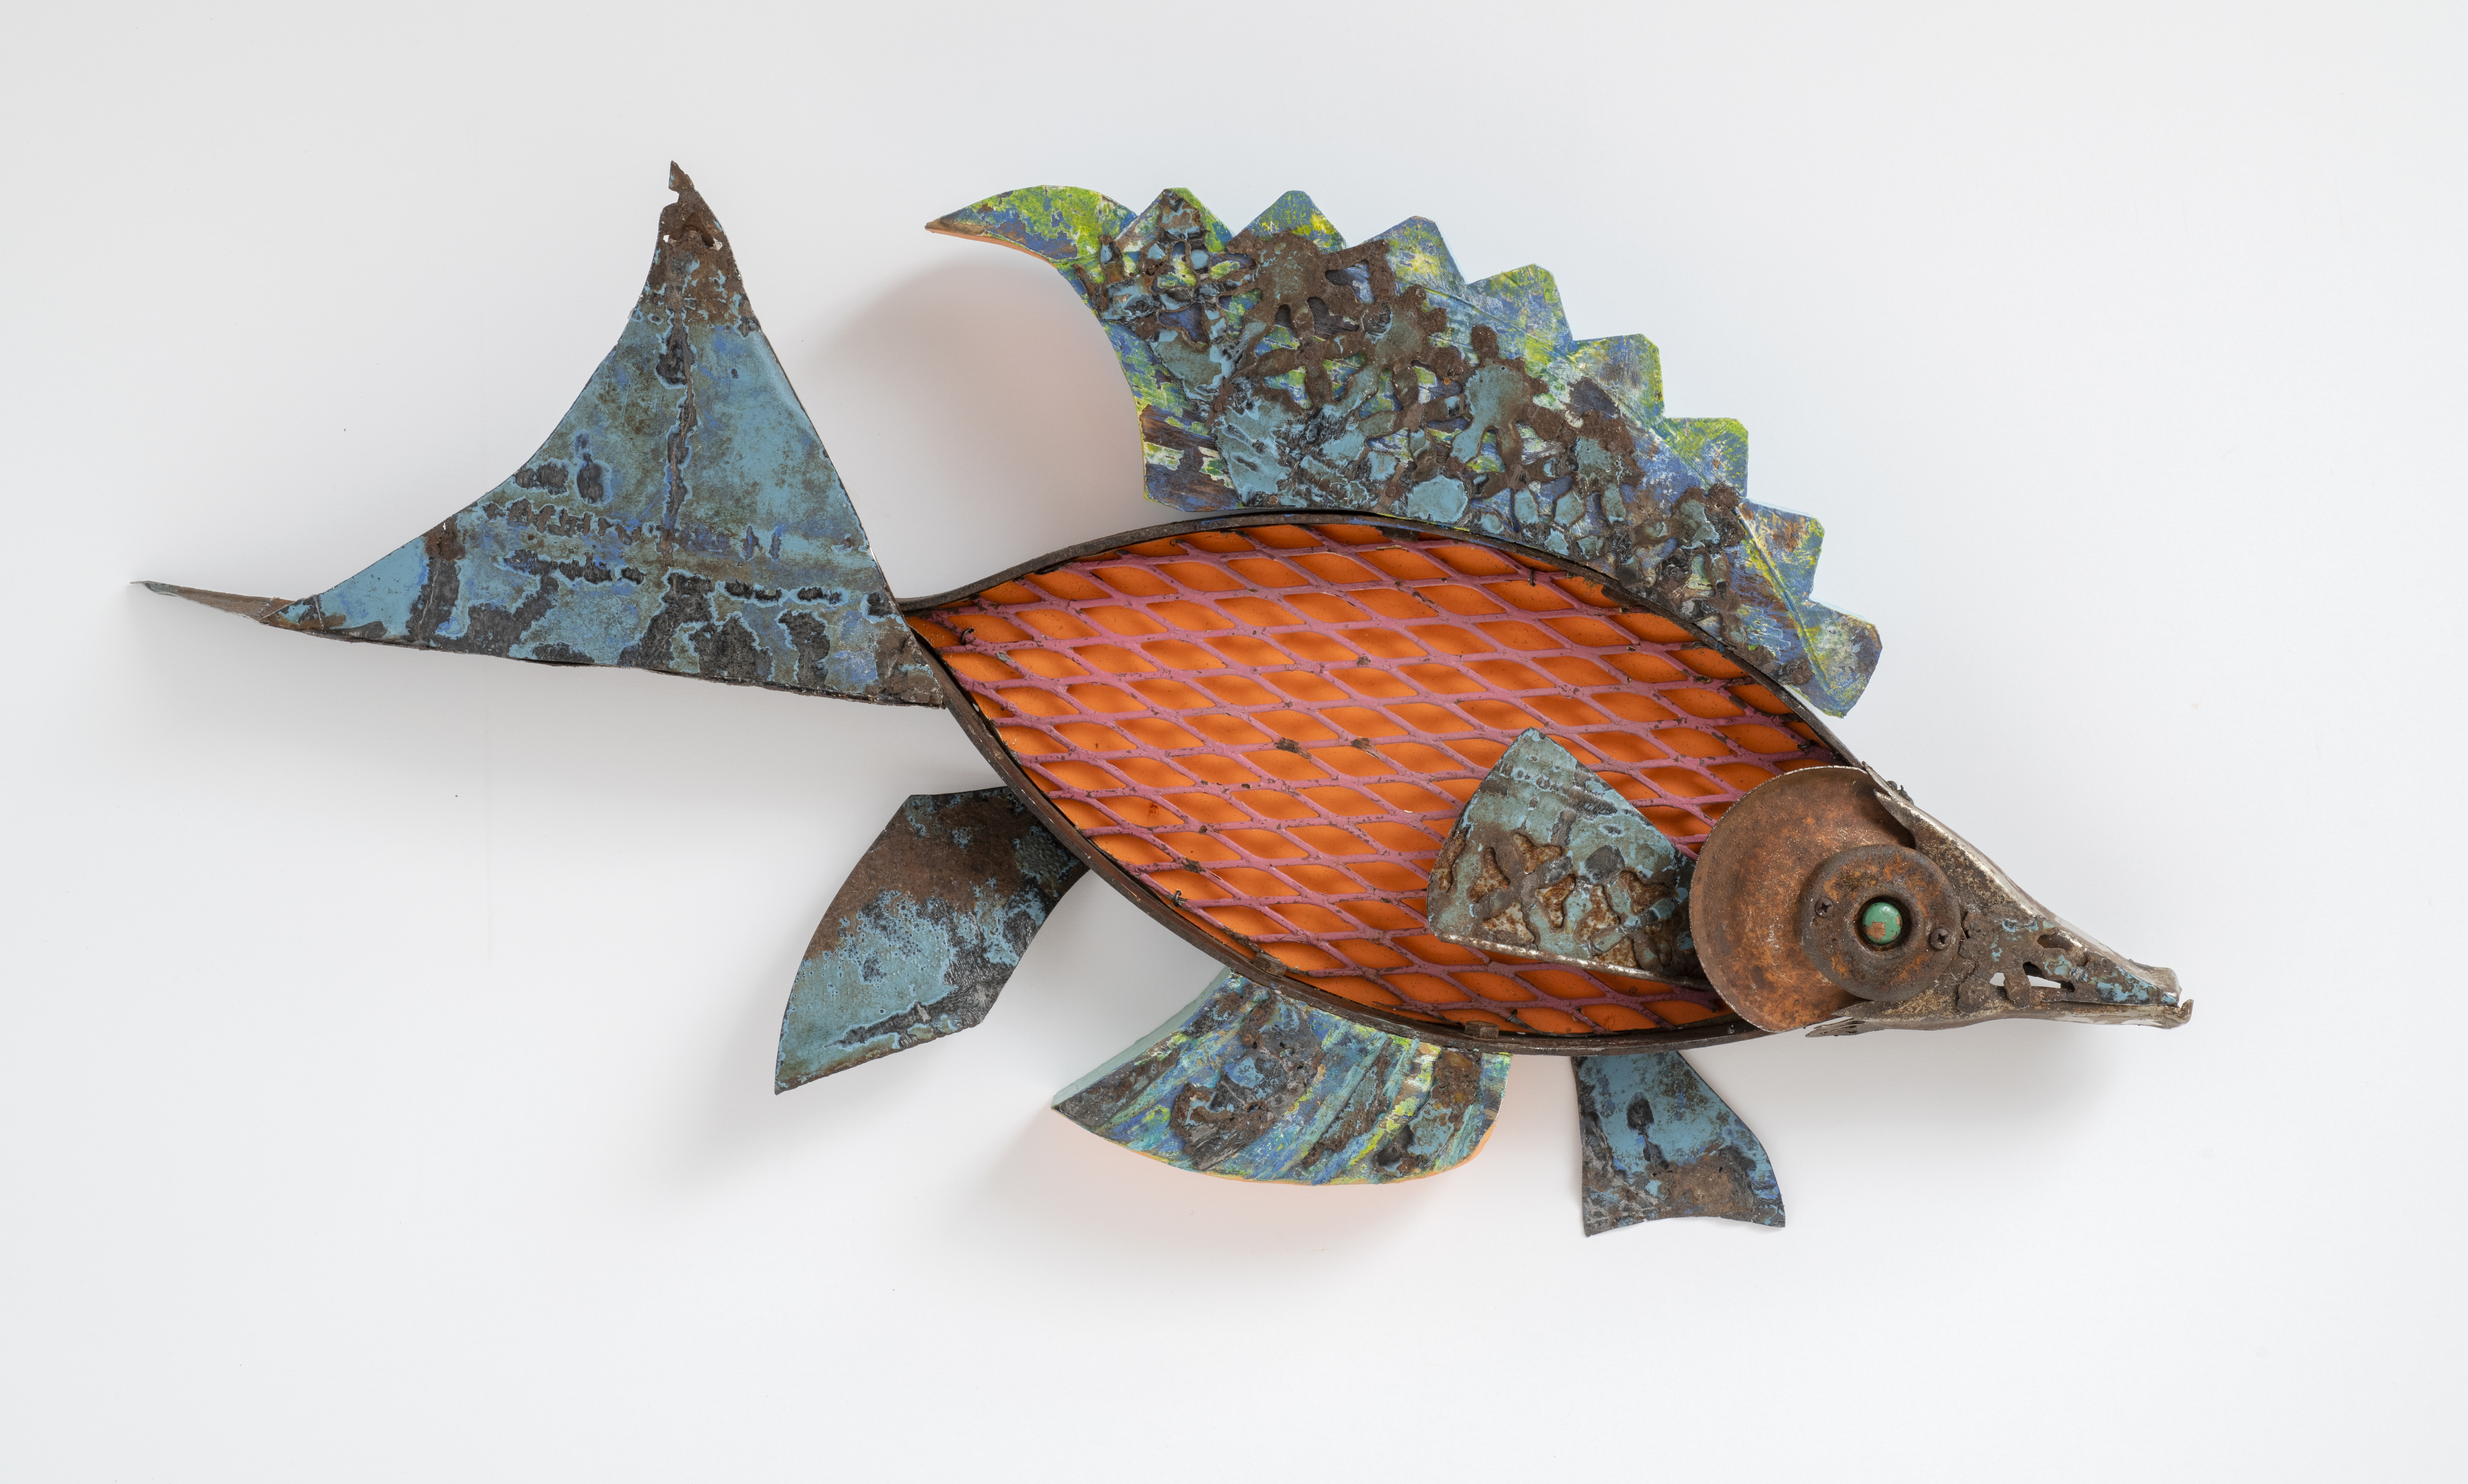 wall sculpture, found objects, mixed media, fish, ocean, sea, alcohol